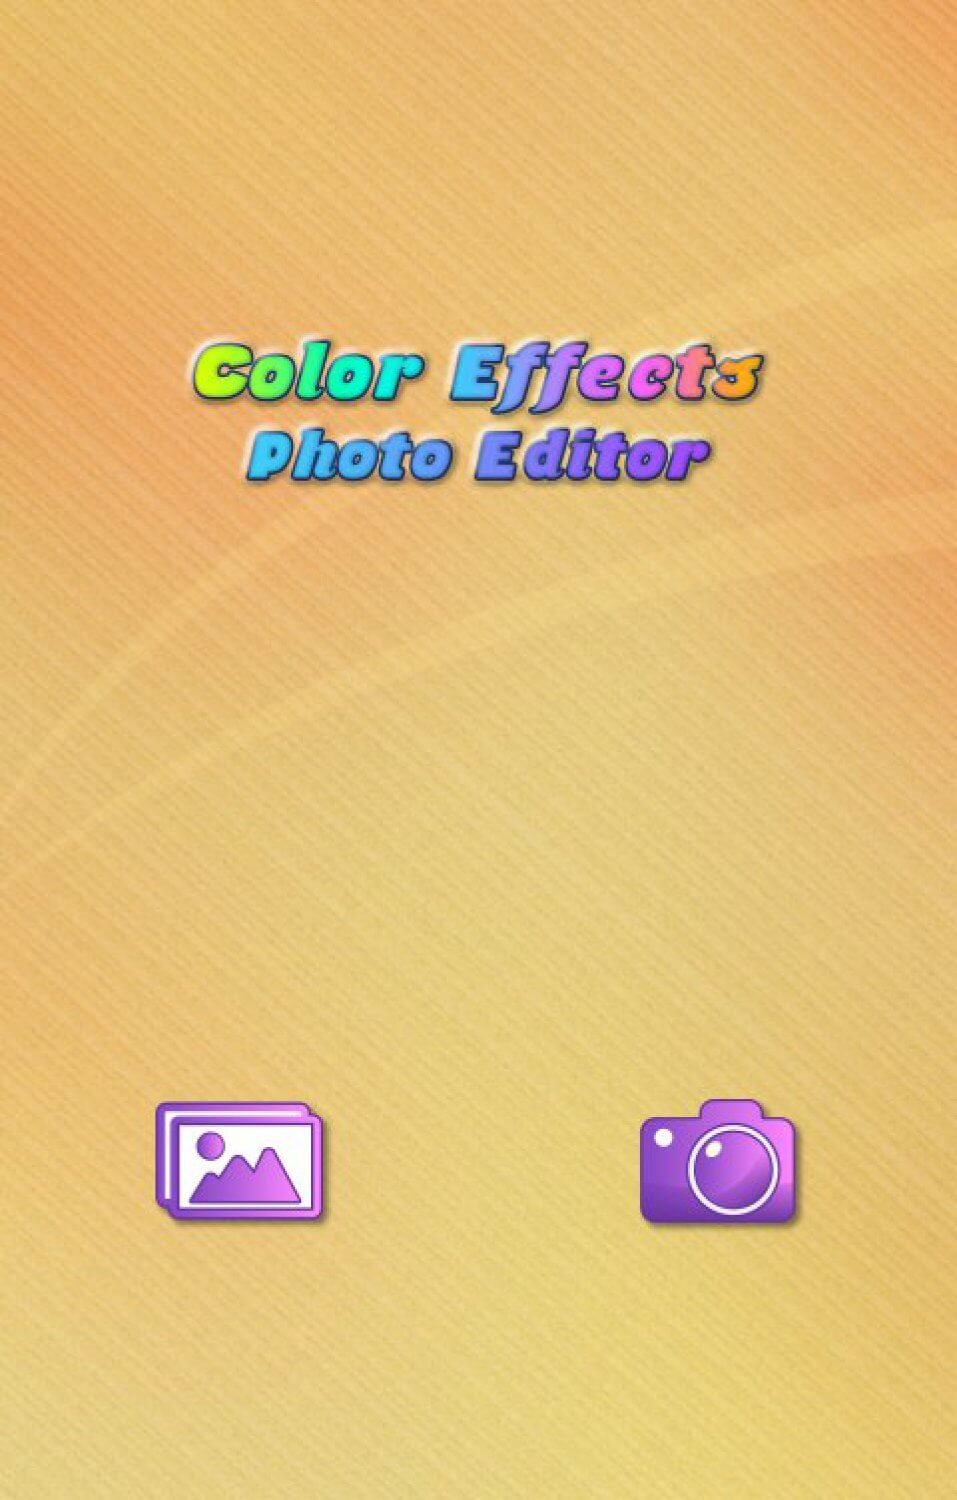 Color Effects Photo Editor